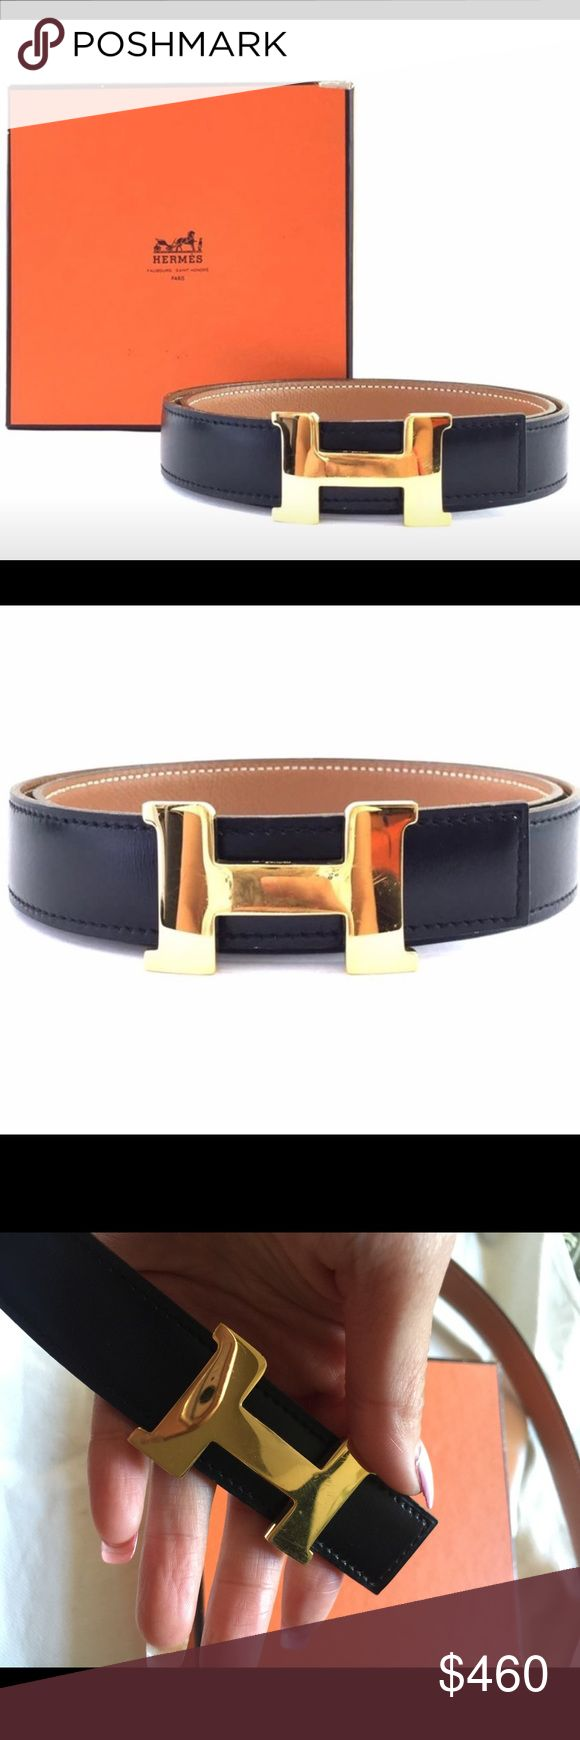 """Hermes Belt Hermes 24mm Gold H belt reversible belt black on gold. Gently used  Retail price $664.00  Authentic Hermes belt in very excellent condition.  From front hole to 1st through 3rd hold 26.5""""-27.5""""-28.5""""  Box is included Hermes Accessories Belts"""